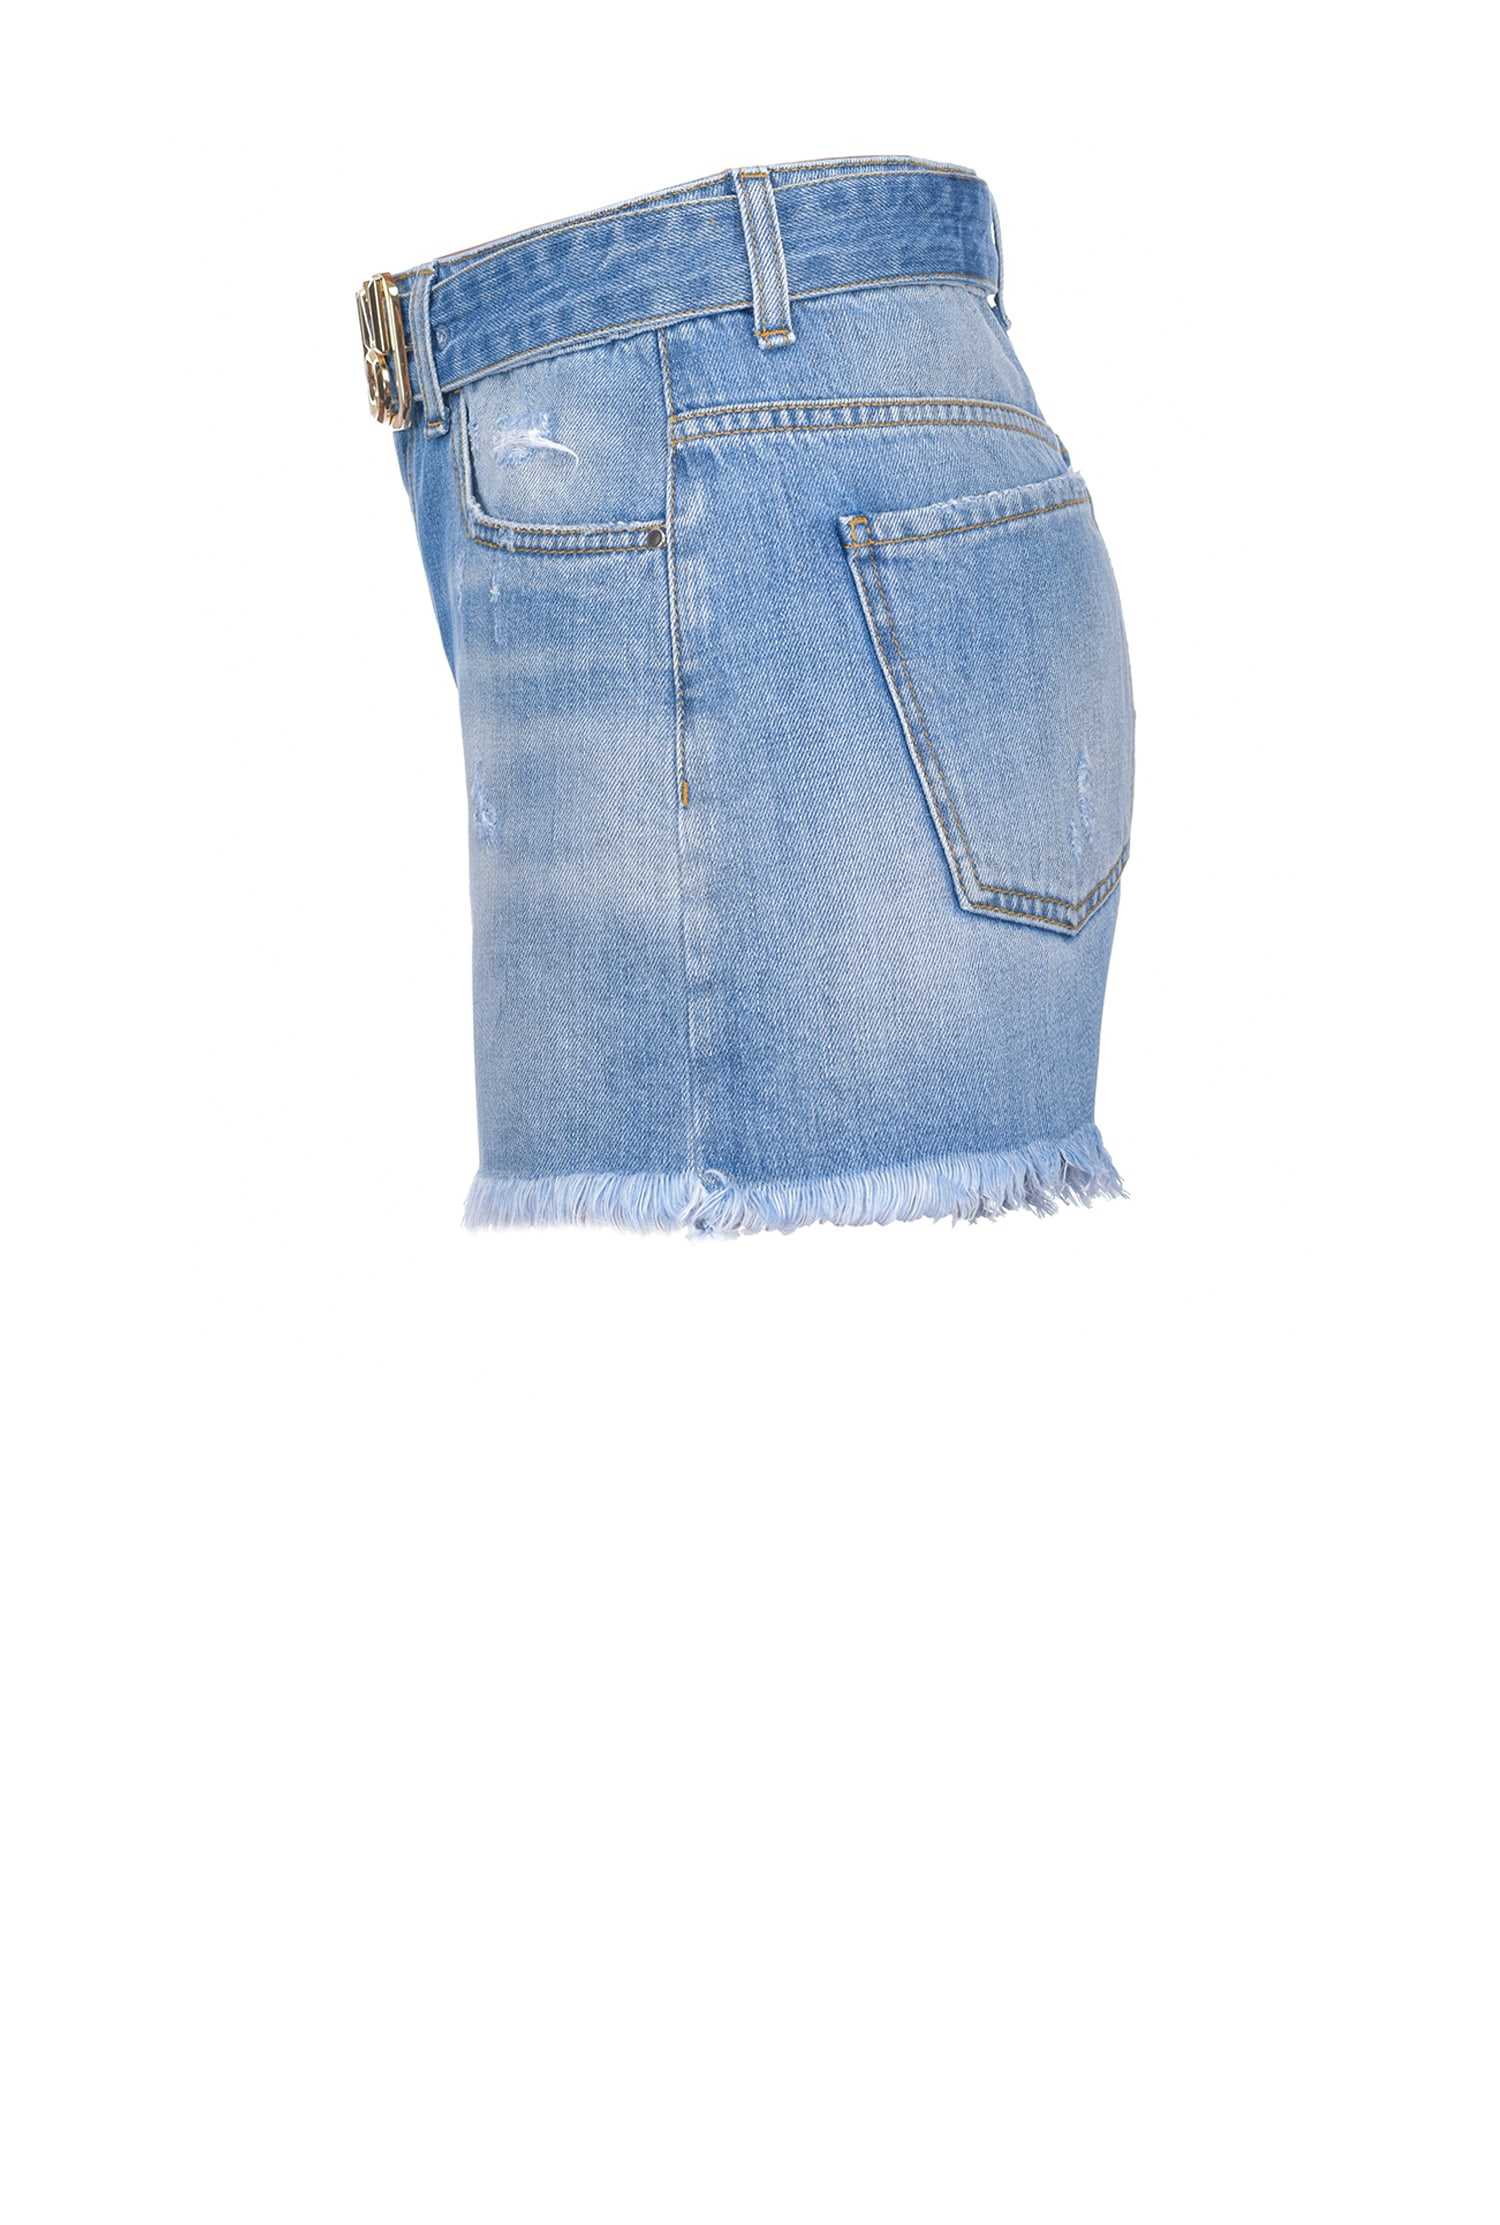 SHOPPING ON LINE PINKO SHORTS IN DENIM CON FIBBIA LOGO BROOKLYN NEW COLLECTION WOMEN'S SPRING SUMMER 2021